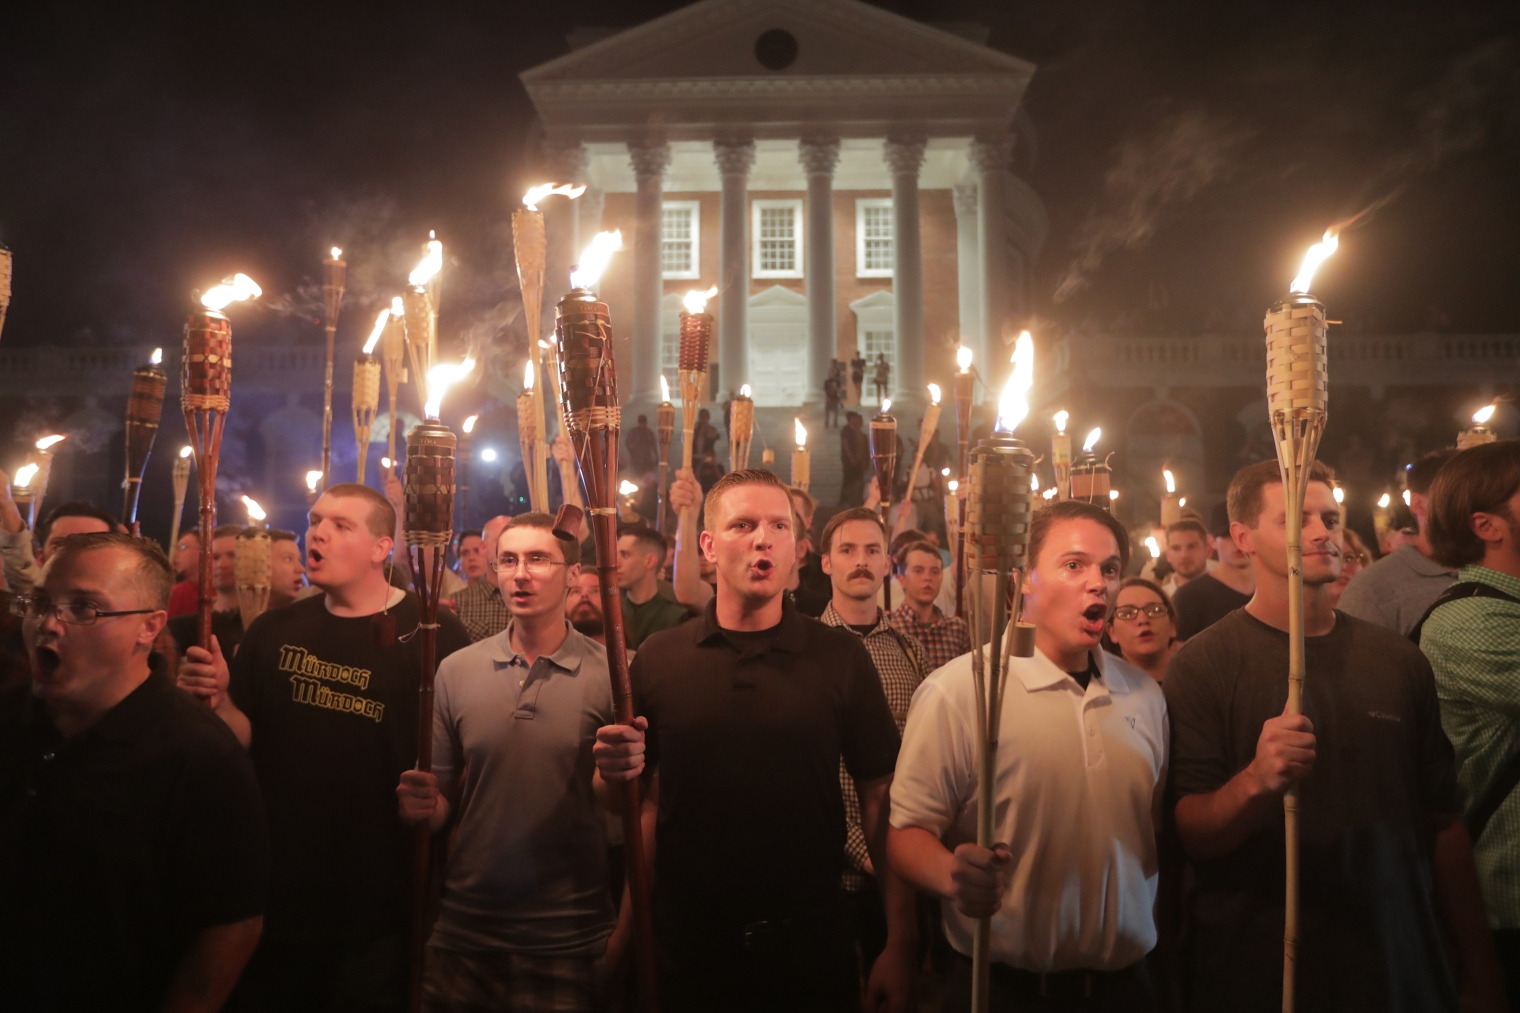 hite nationalists lead a torch march through the grounds of the University of Virginia campus in Charlottesville, Va., on Aug. 11, 2017.